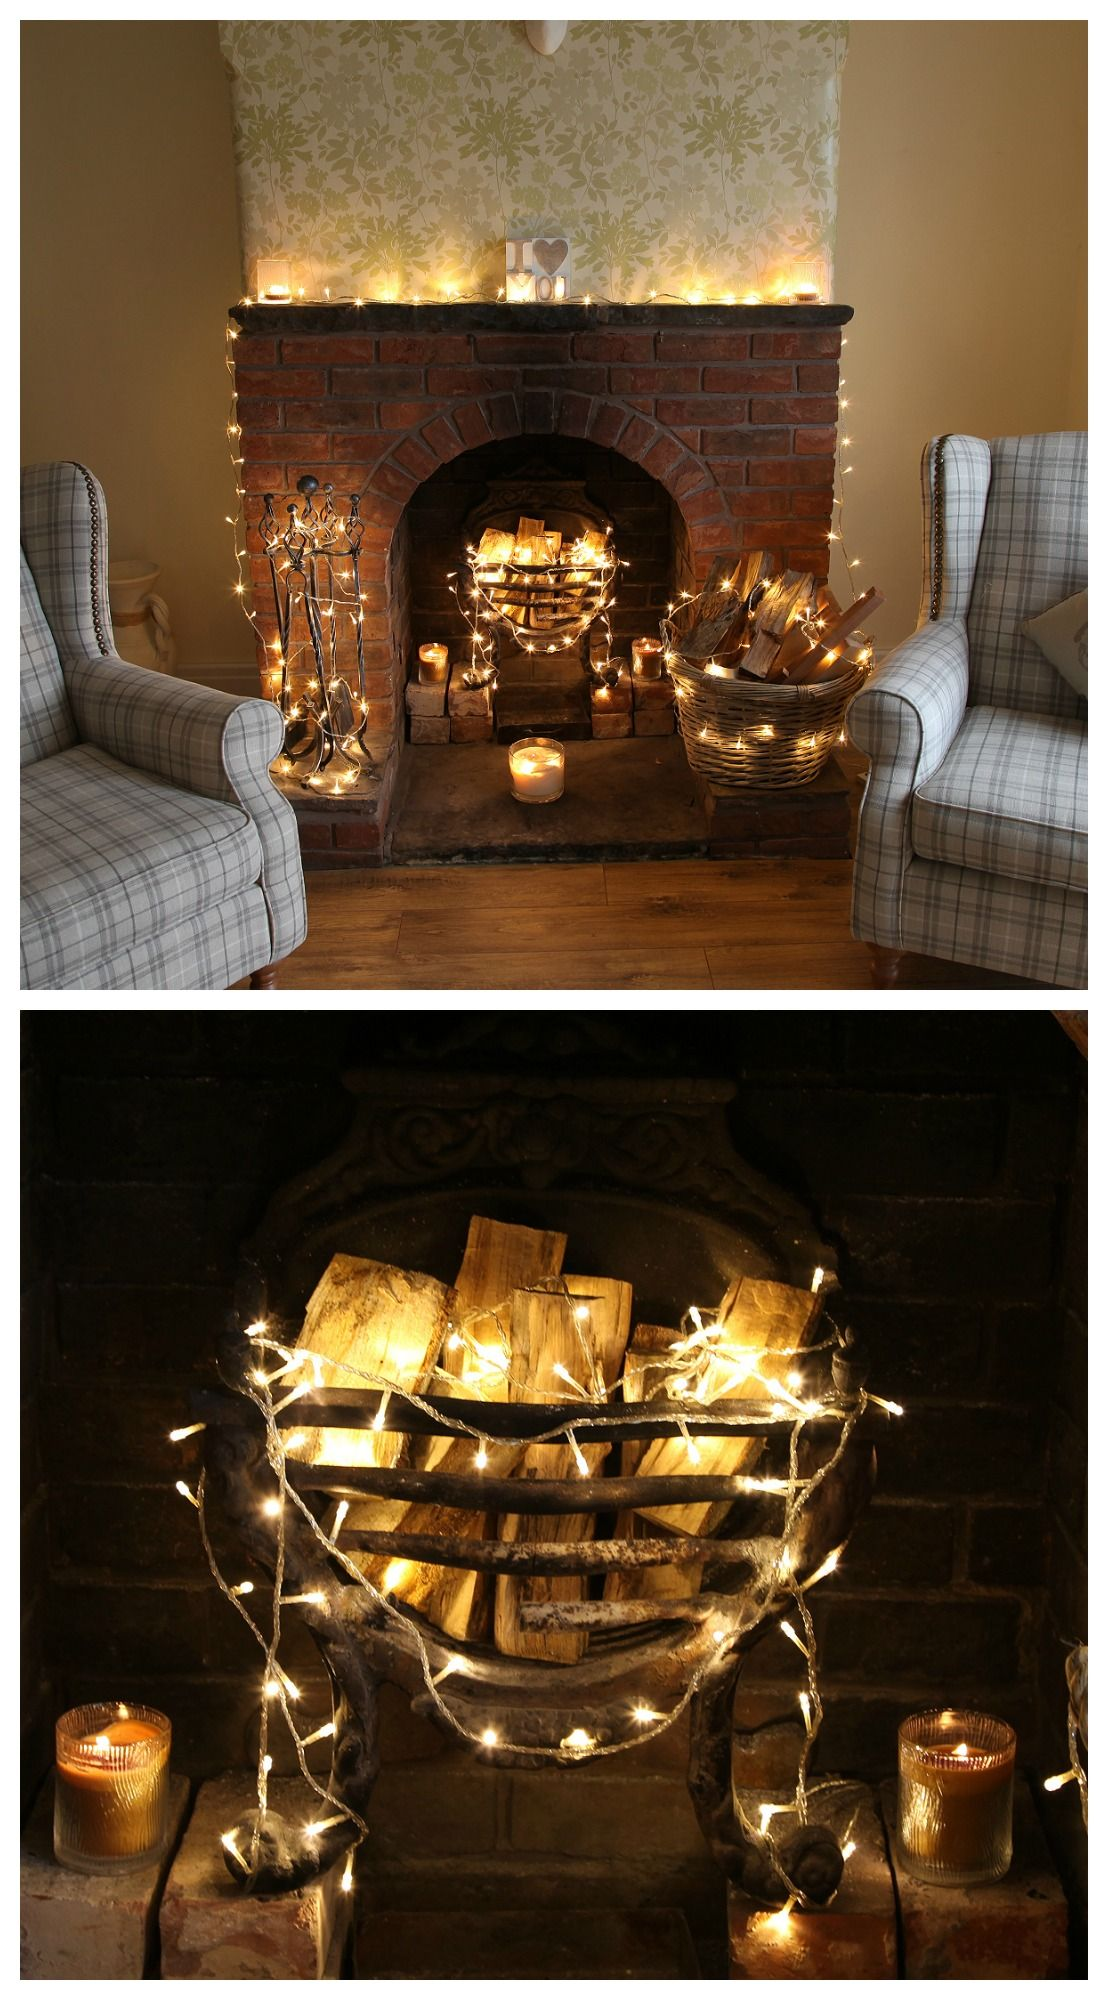 firebox en winter traditional hospitality relaxation hearth light fire lights night lighting free photo flame fireplace images flames darkness heat temple and burn shadows